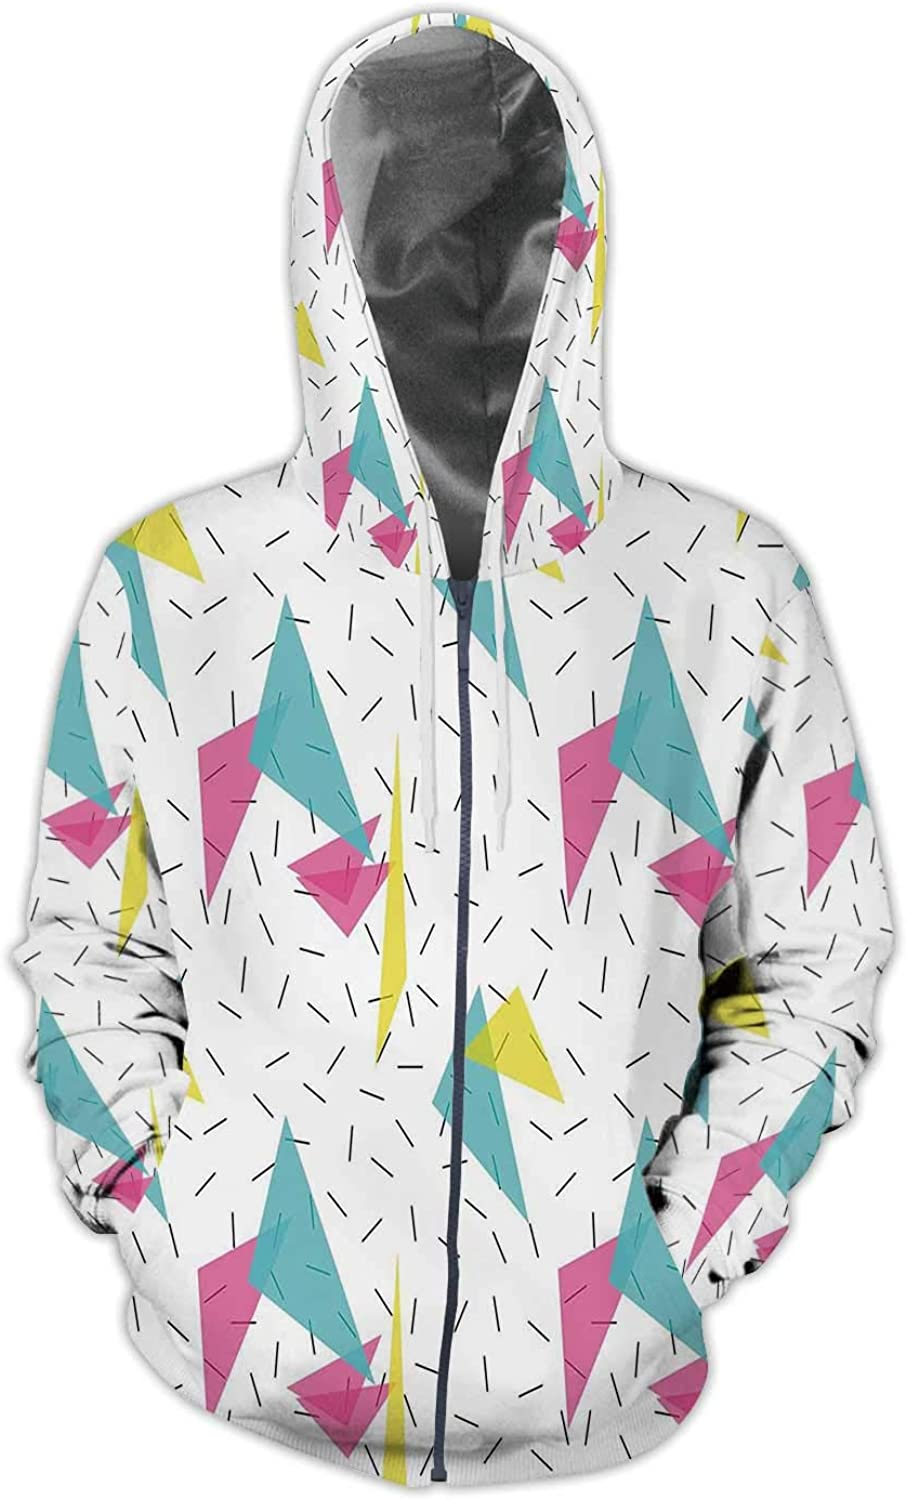 Cartoon Doodles Hand Drawn Cinema,Men//Womens Warm Outerwear Jackets and Hoodies Colorful S